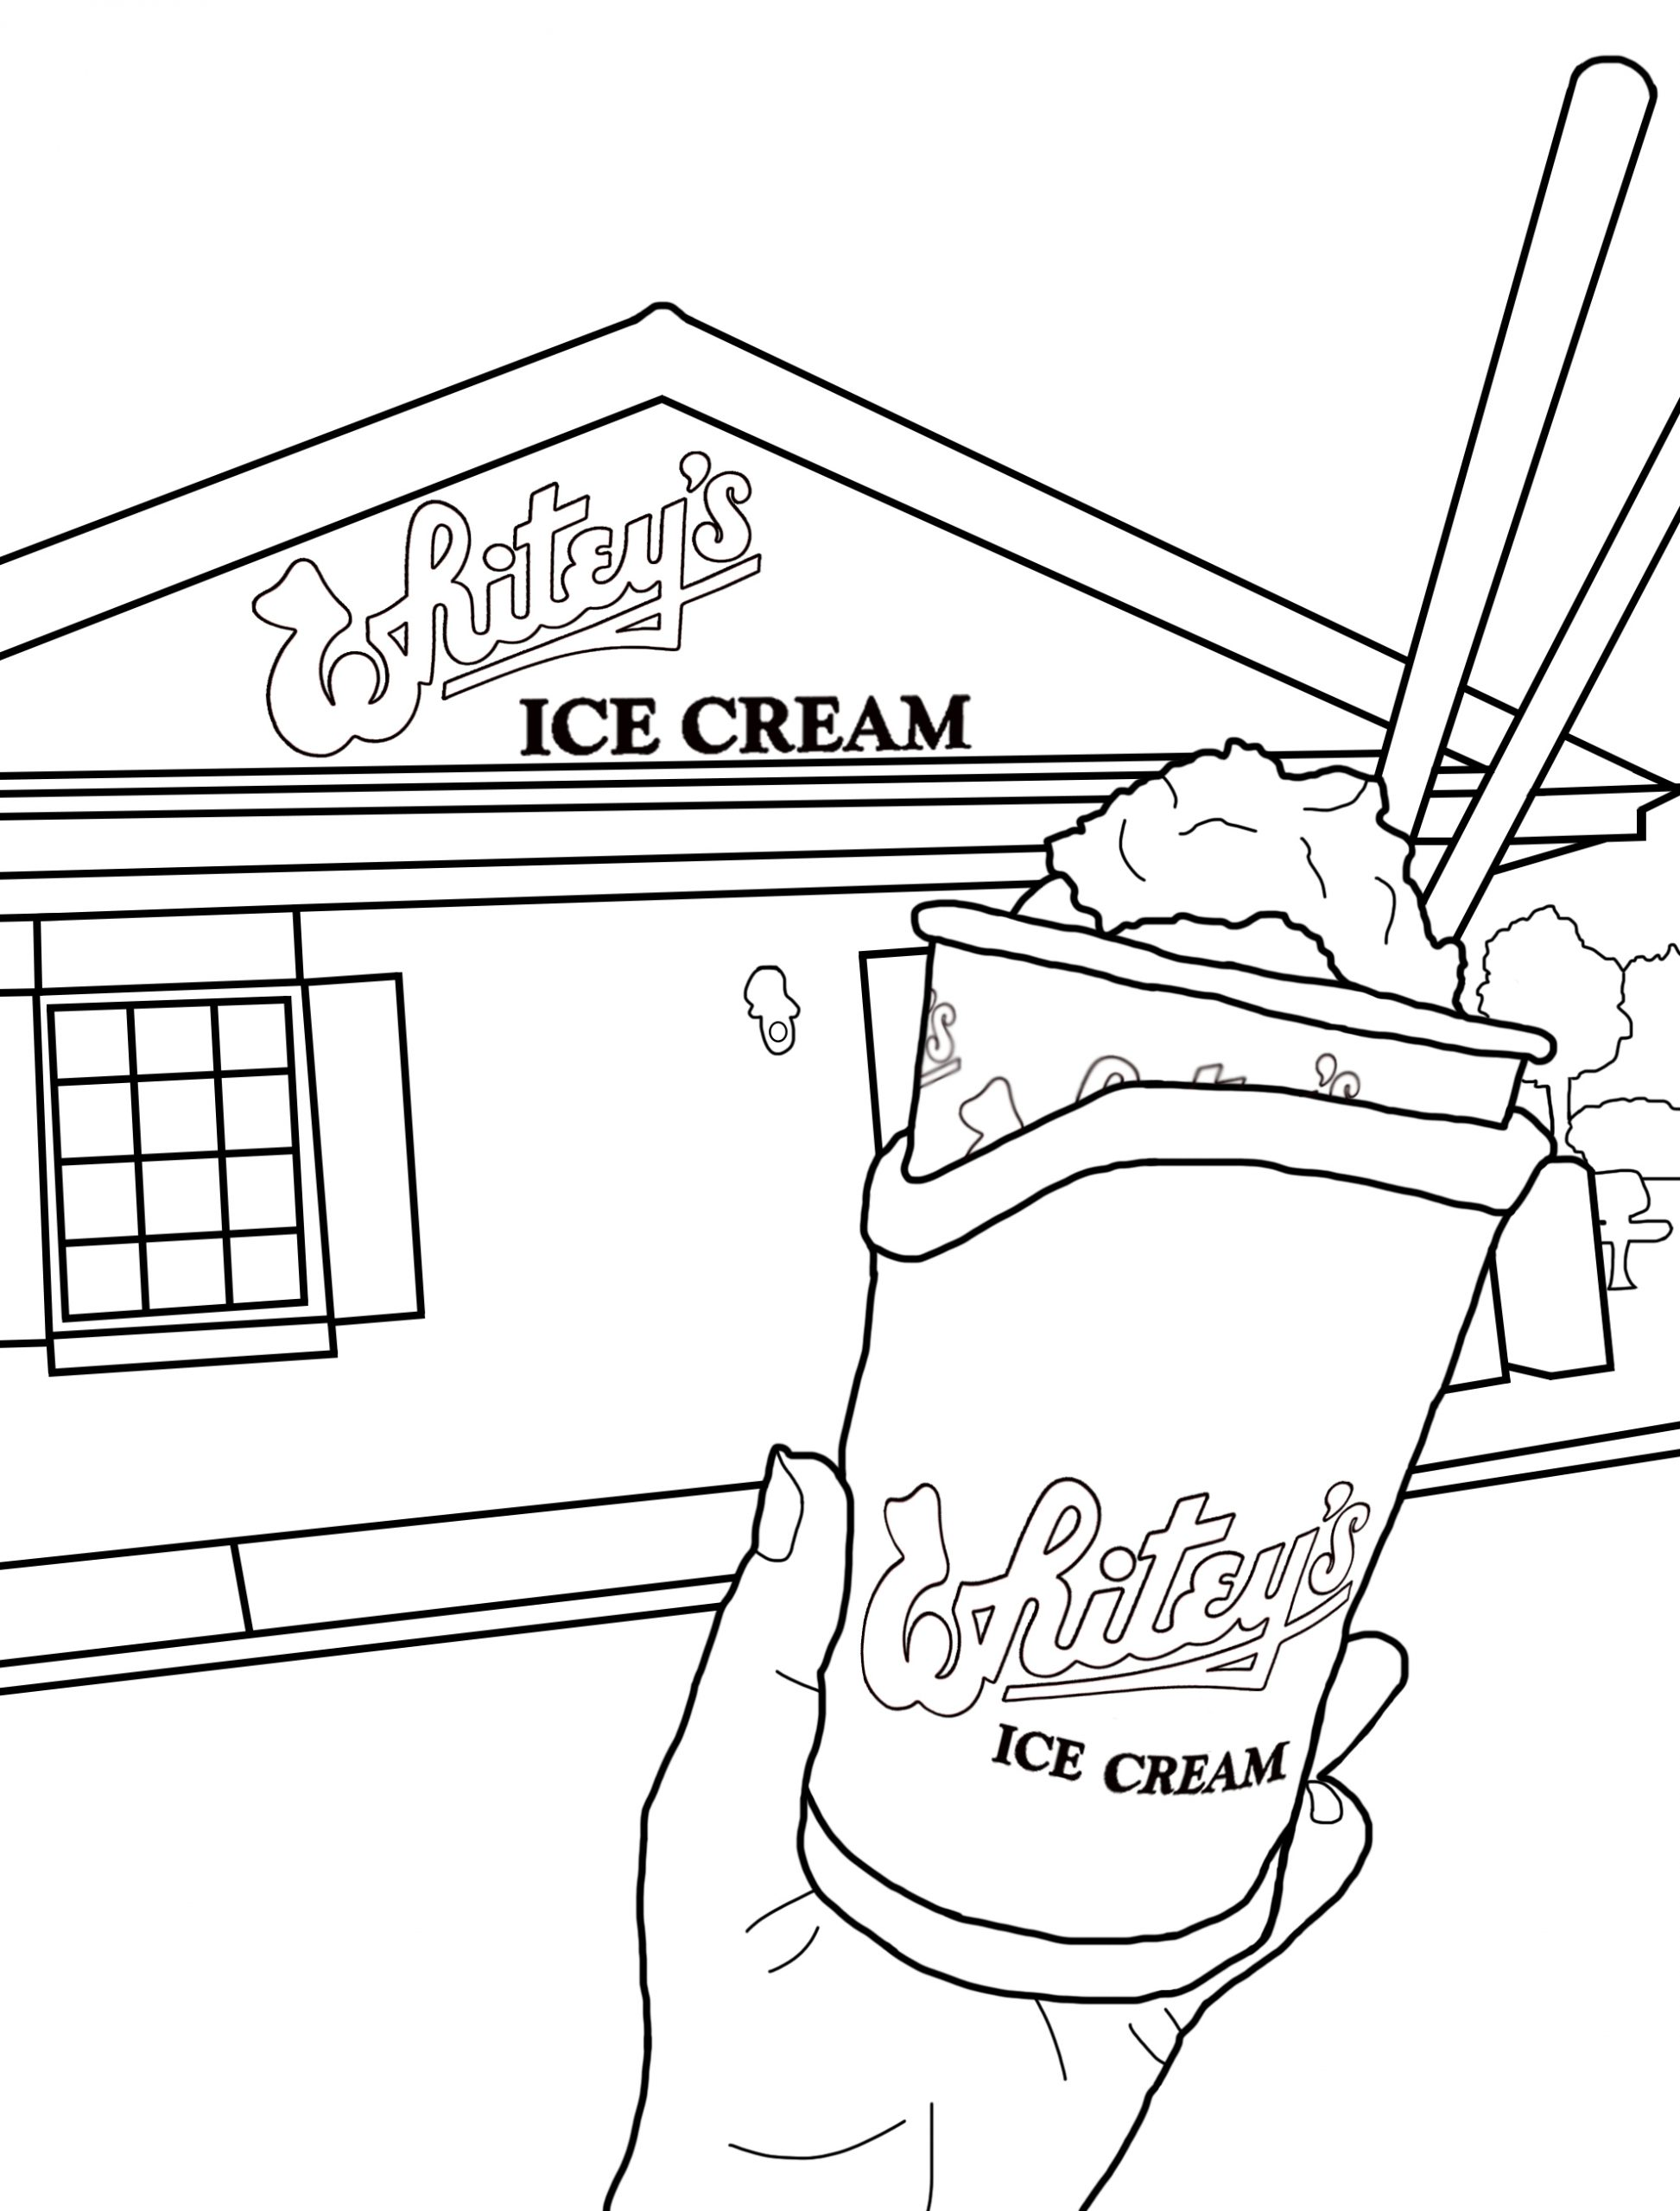 Whitey's Ice Cream Store and Shake